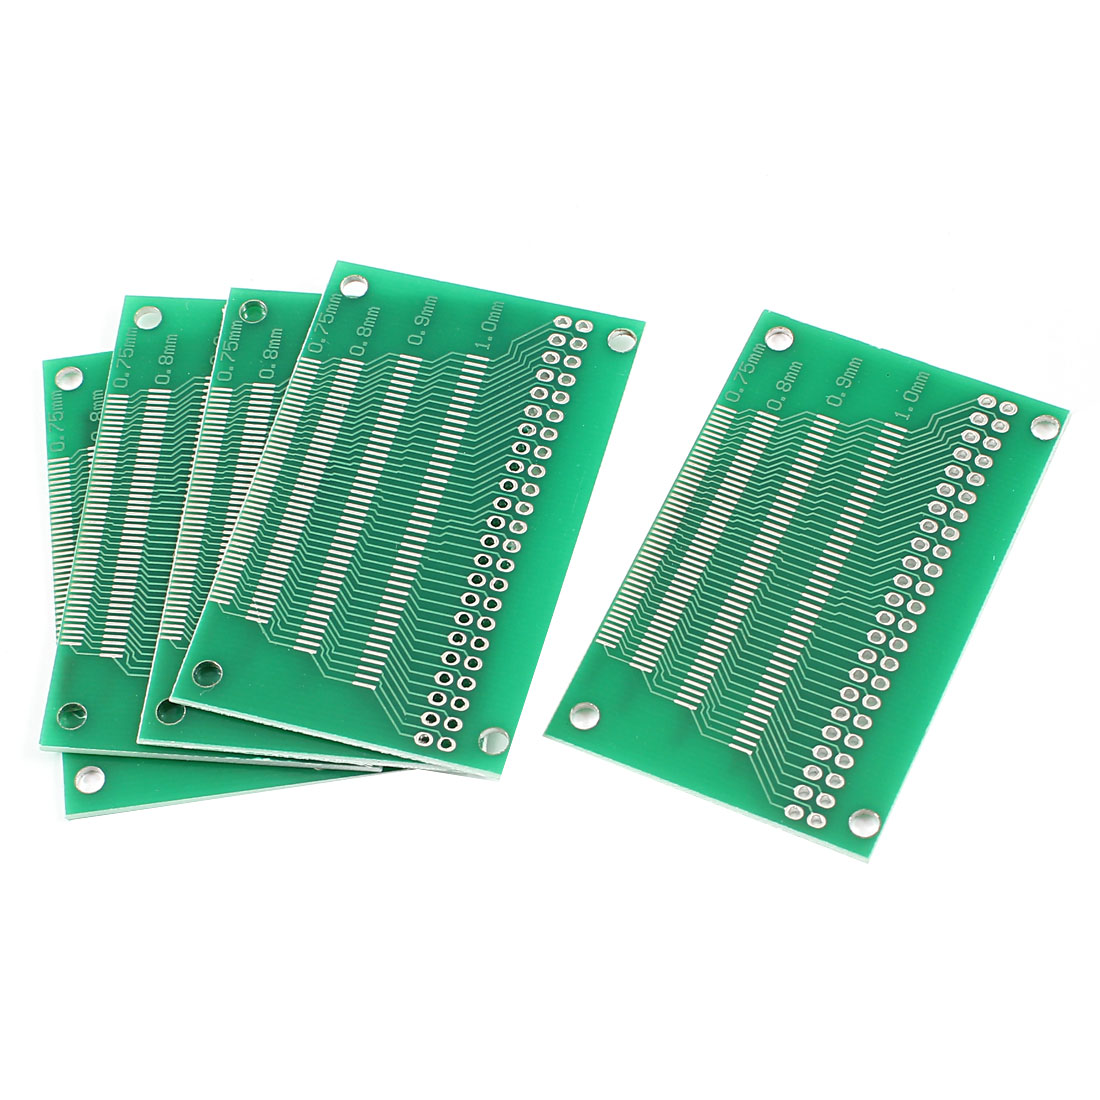 5 Pcs Universal Double Sided 0.4mm-1.0 Pitch TFT LCD Adapter PCB Board 60mmx38mm